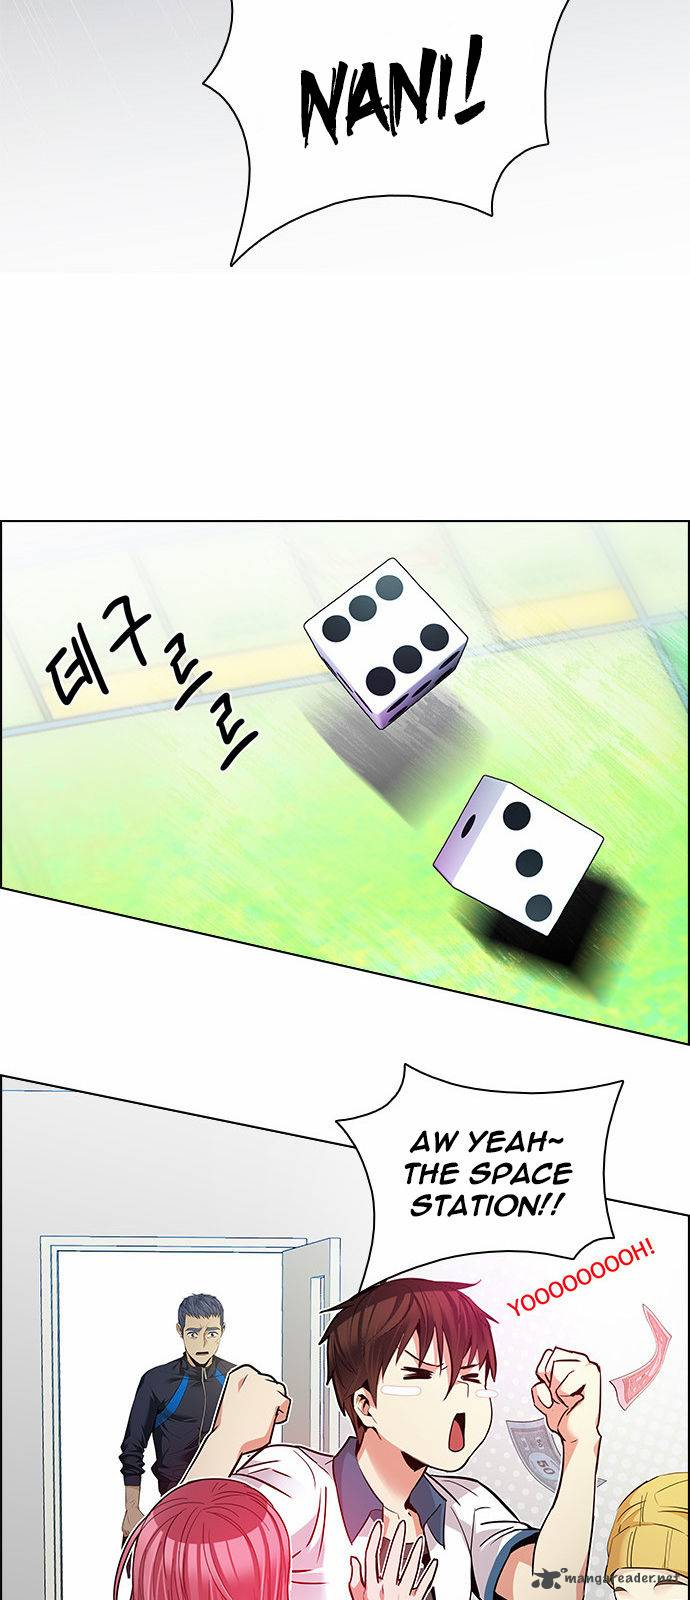 dice_the_cube_that_changes_everything_143_38